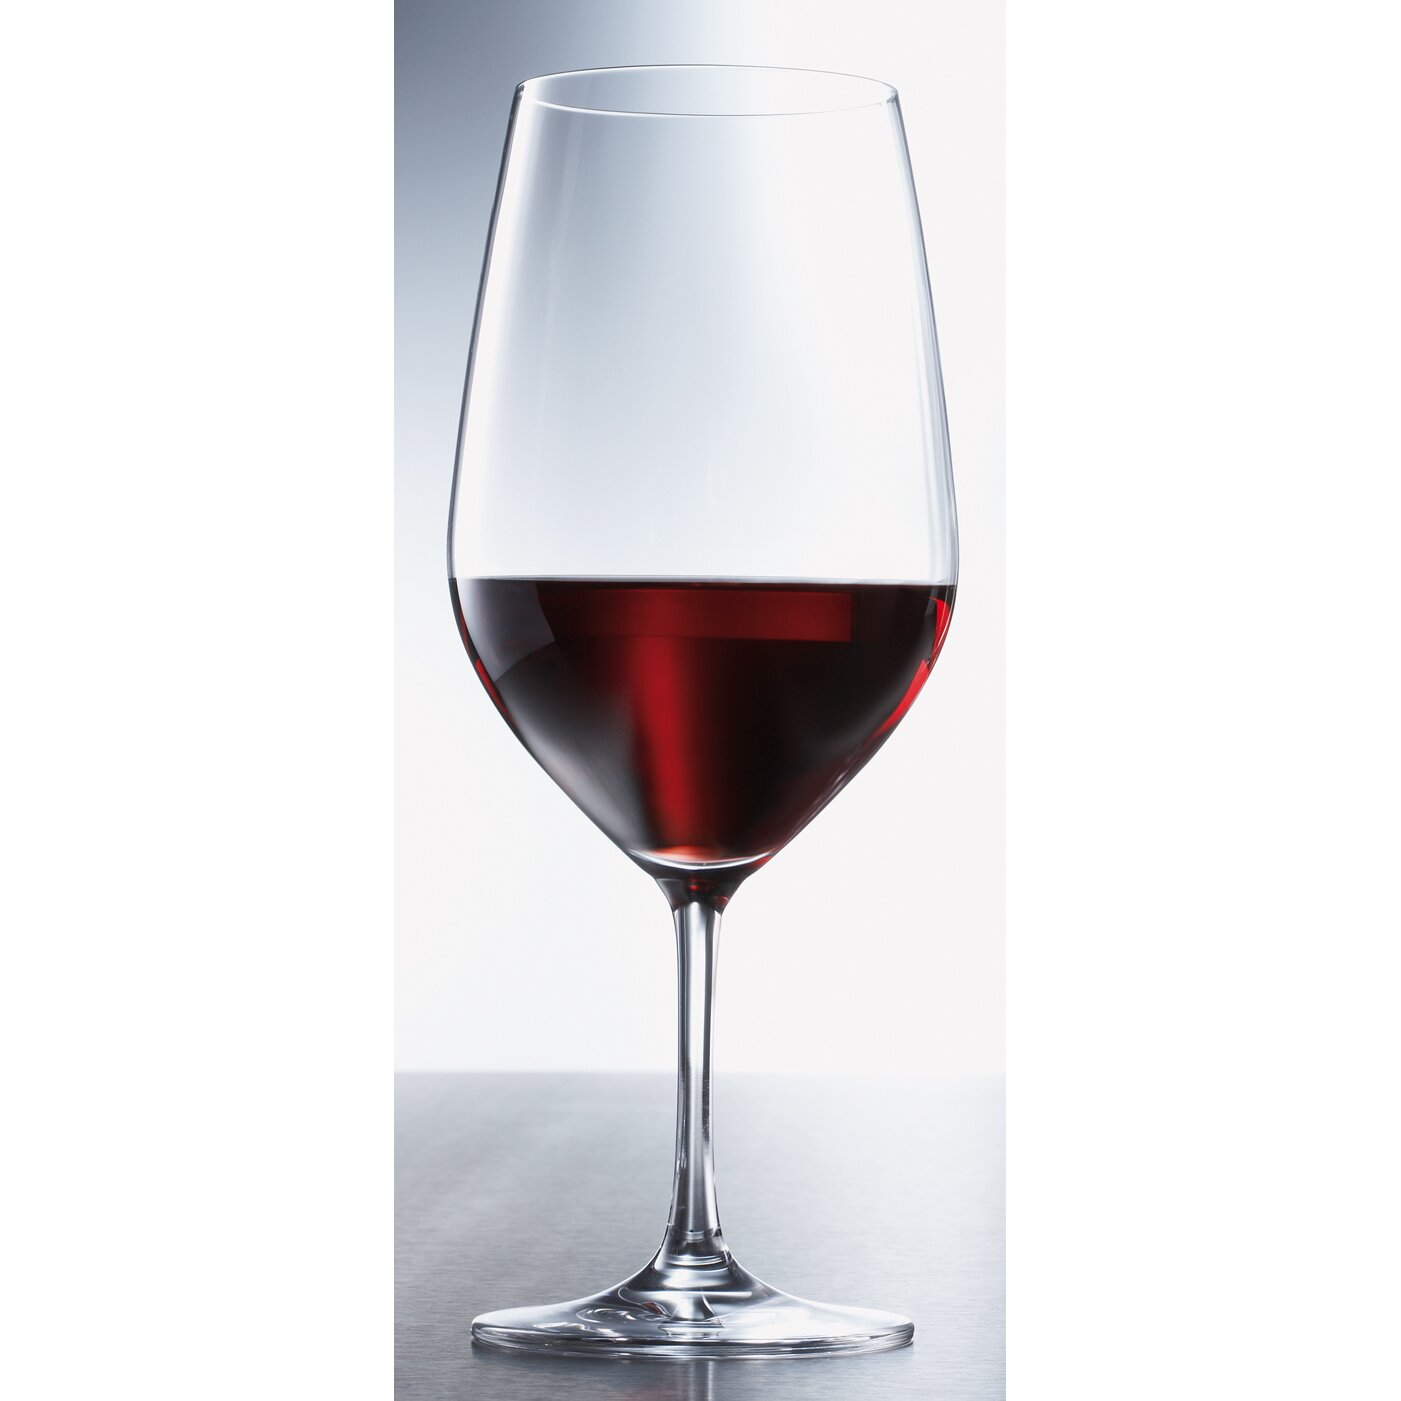 Schott Zwiesel Forte Red Wine Glass amp Reviews Wayfair : Schott Zwiesel Forte Red Wine Glass 0007111985 from www.wayfair.com size 1401 x 1401 jpeg 109kB